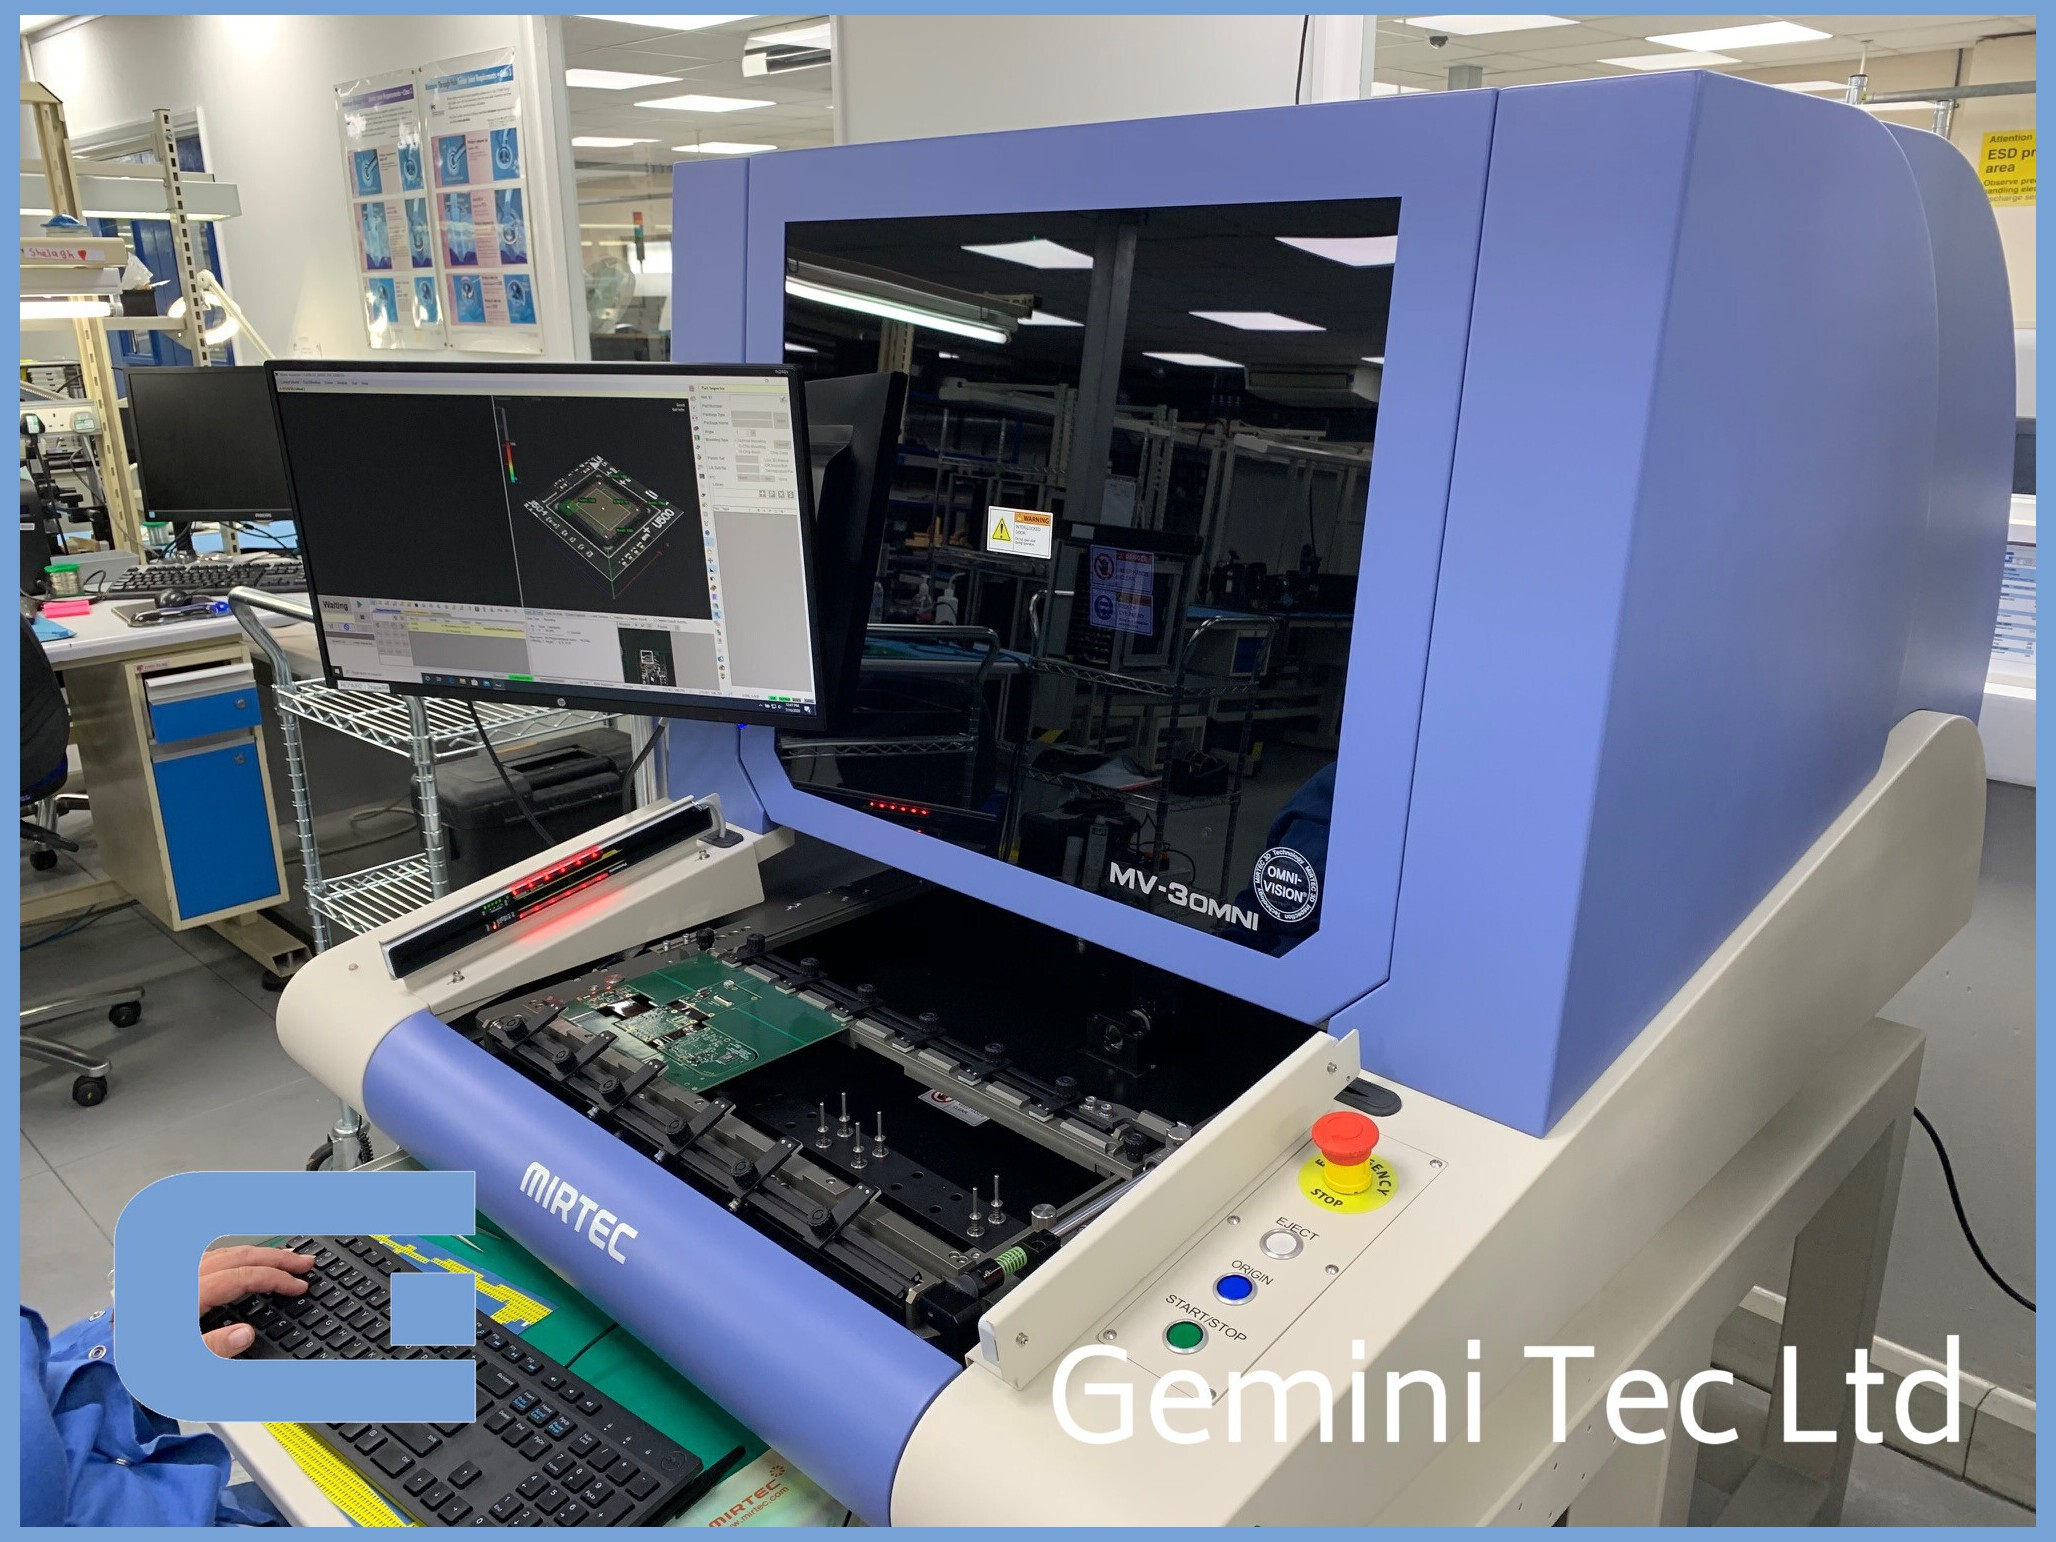 3D AOI using Omni vision at Gemini Tec Ltd